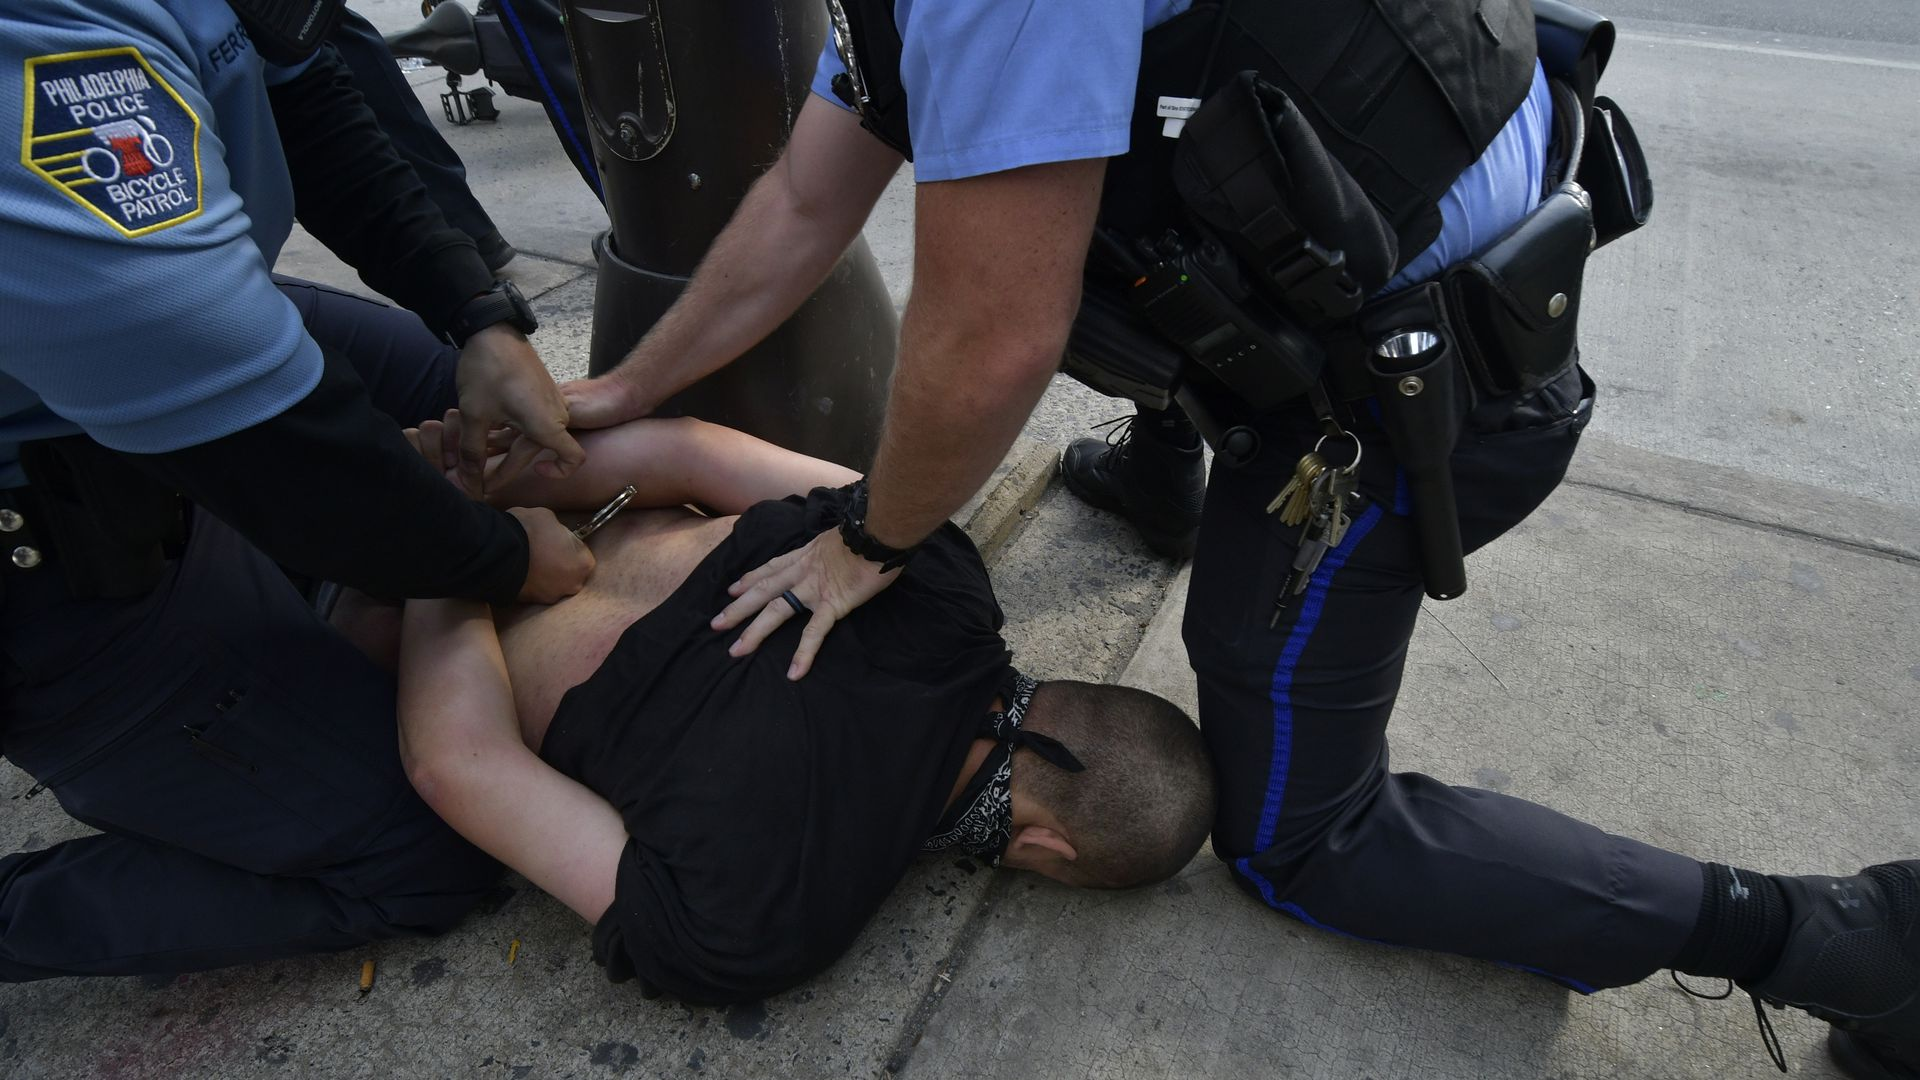 Police officers arresting someone after a police brutality protest